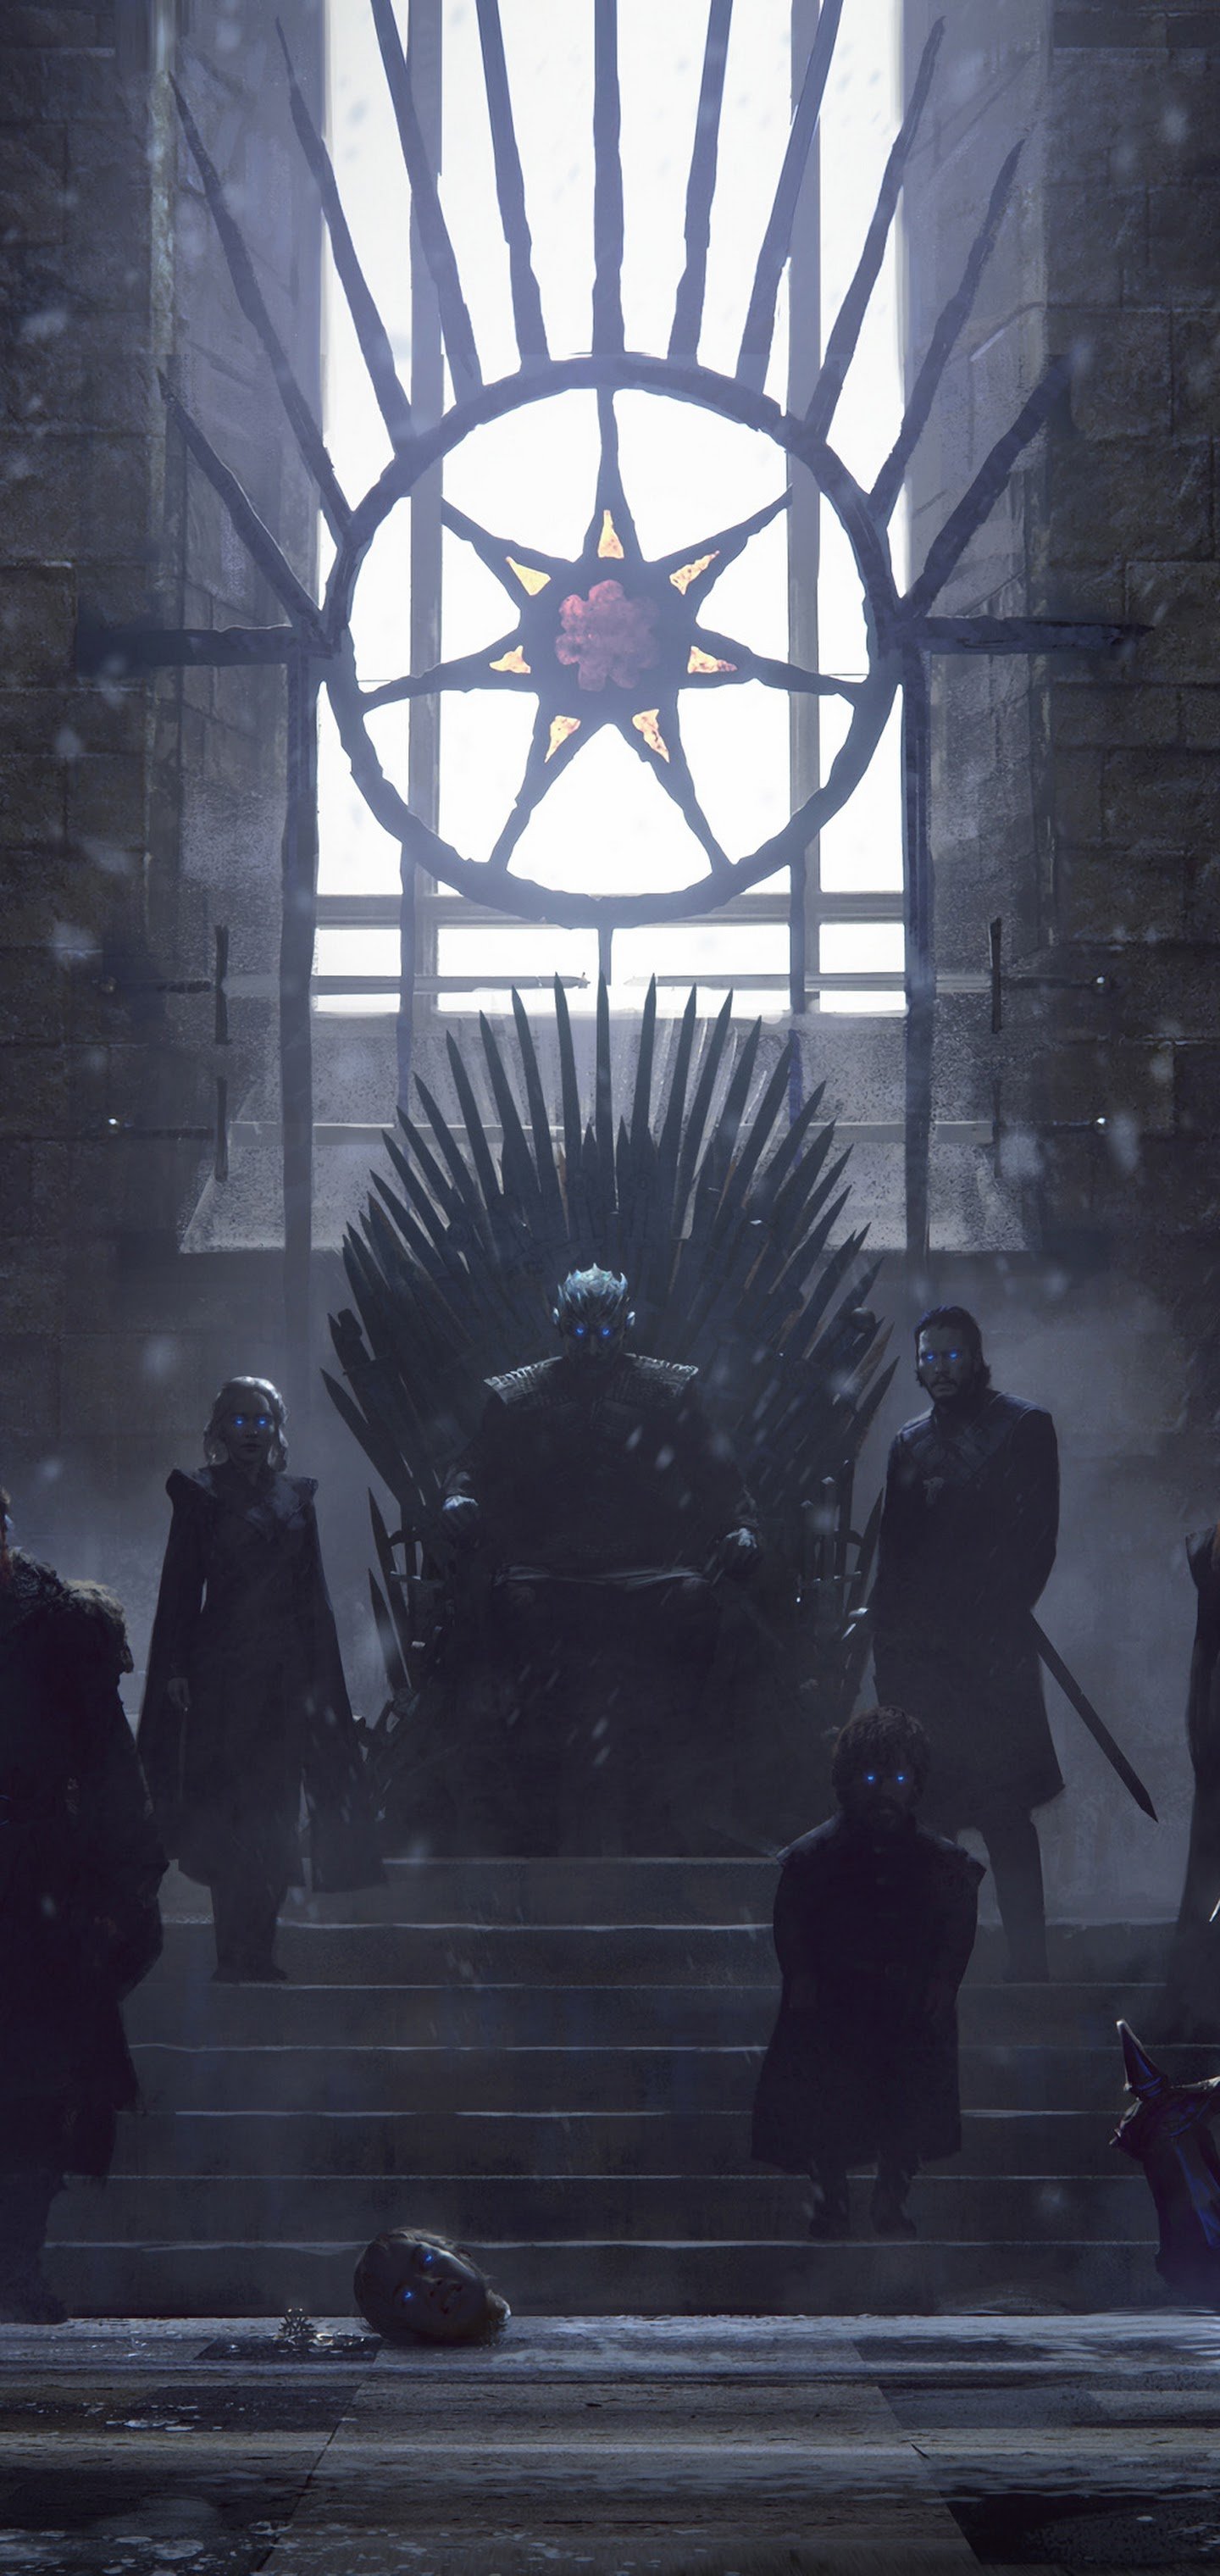 Game Of Thrones Iron Throne Characters 4k Wallpaper 70